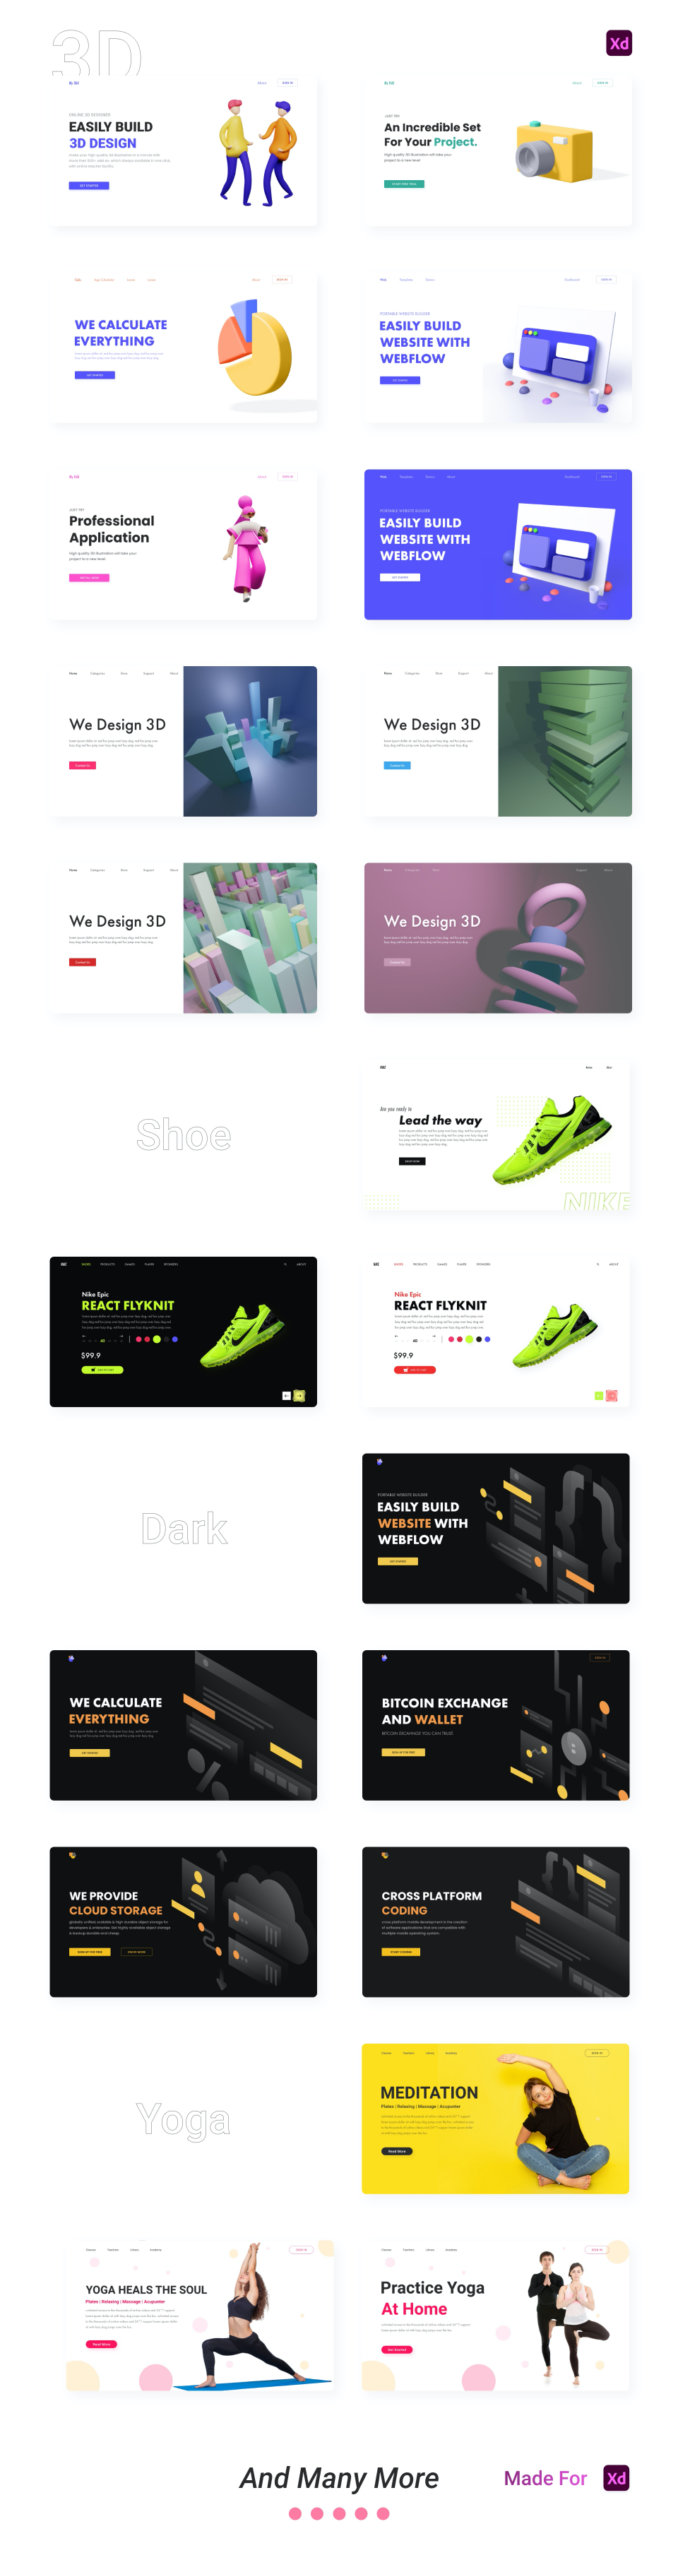 Landing Page Templates for Adobe XD from UIGarage